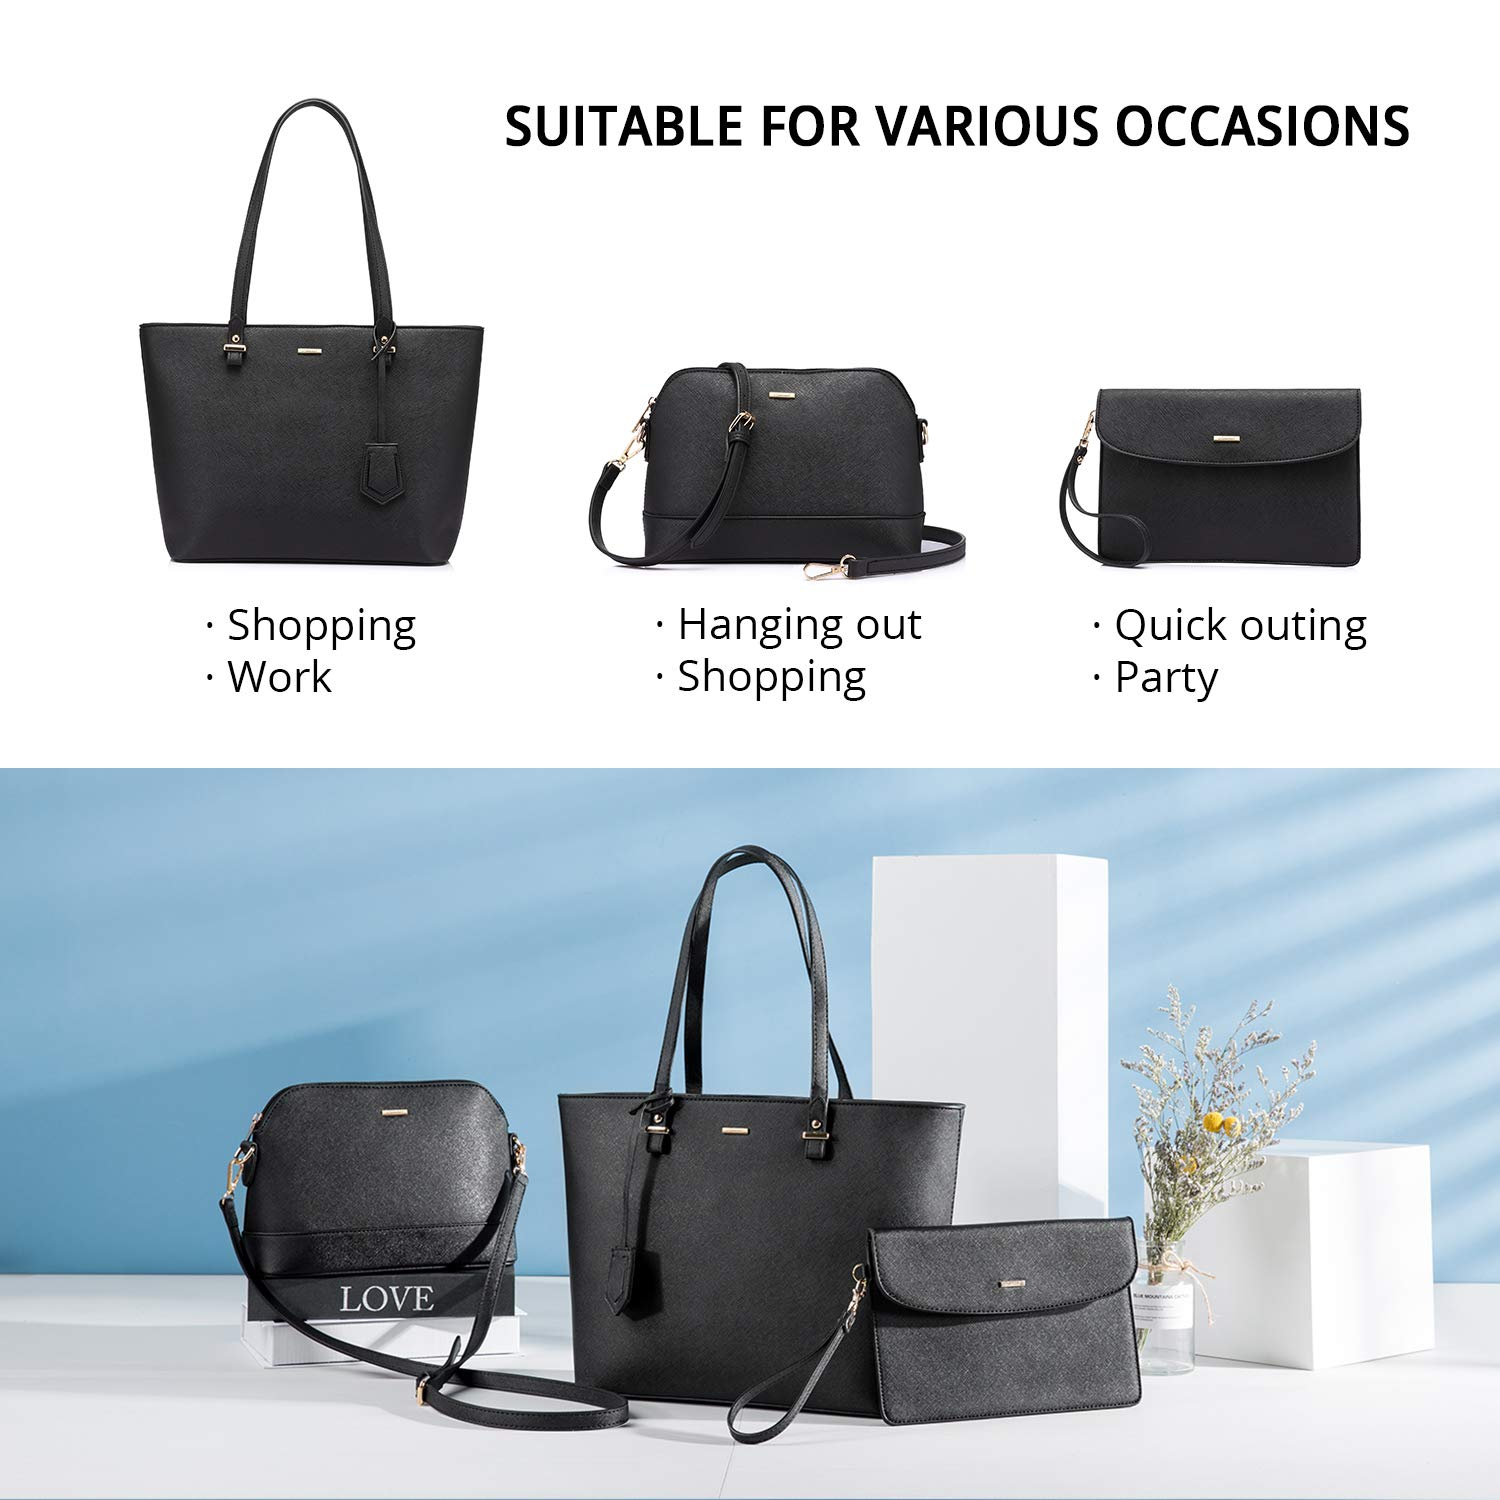 Ladies Handbag Tote Bag Handbags Women Shoulder Bag for Ladies Top Handle  Gorgeous 3 PCS Set Black  Amazon.co.uk  Shoes   Bags c53def4c40a17